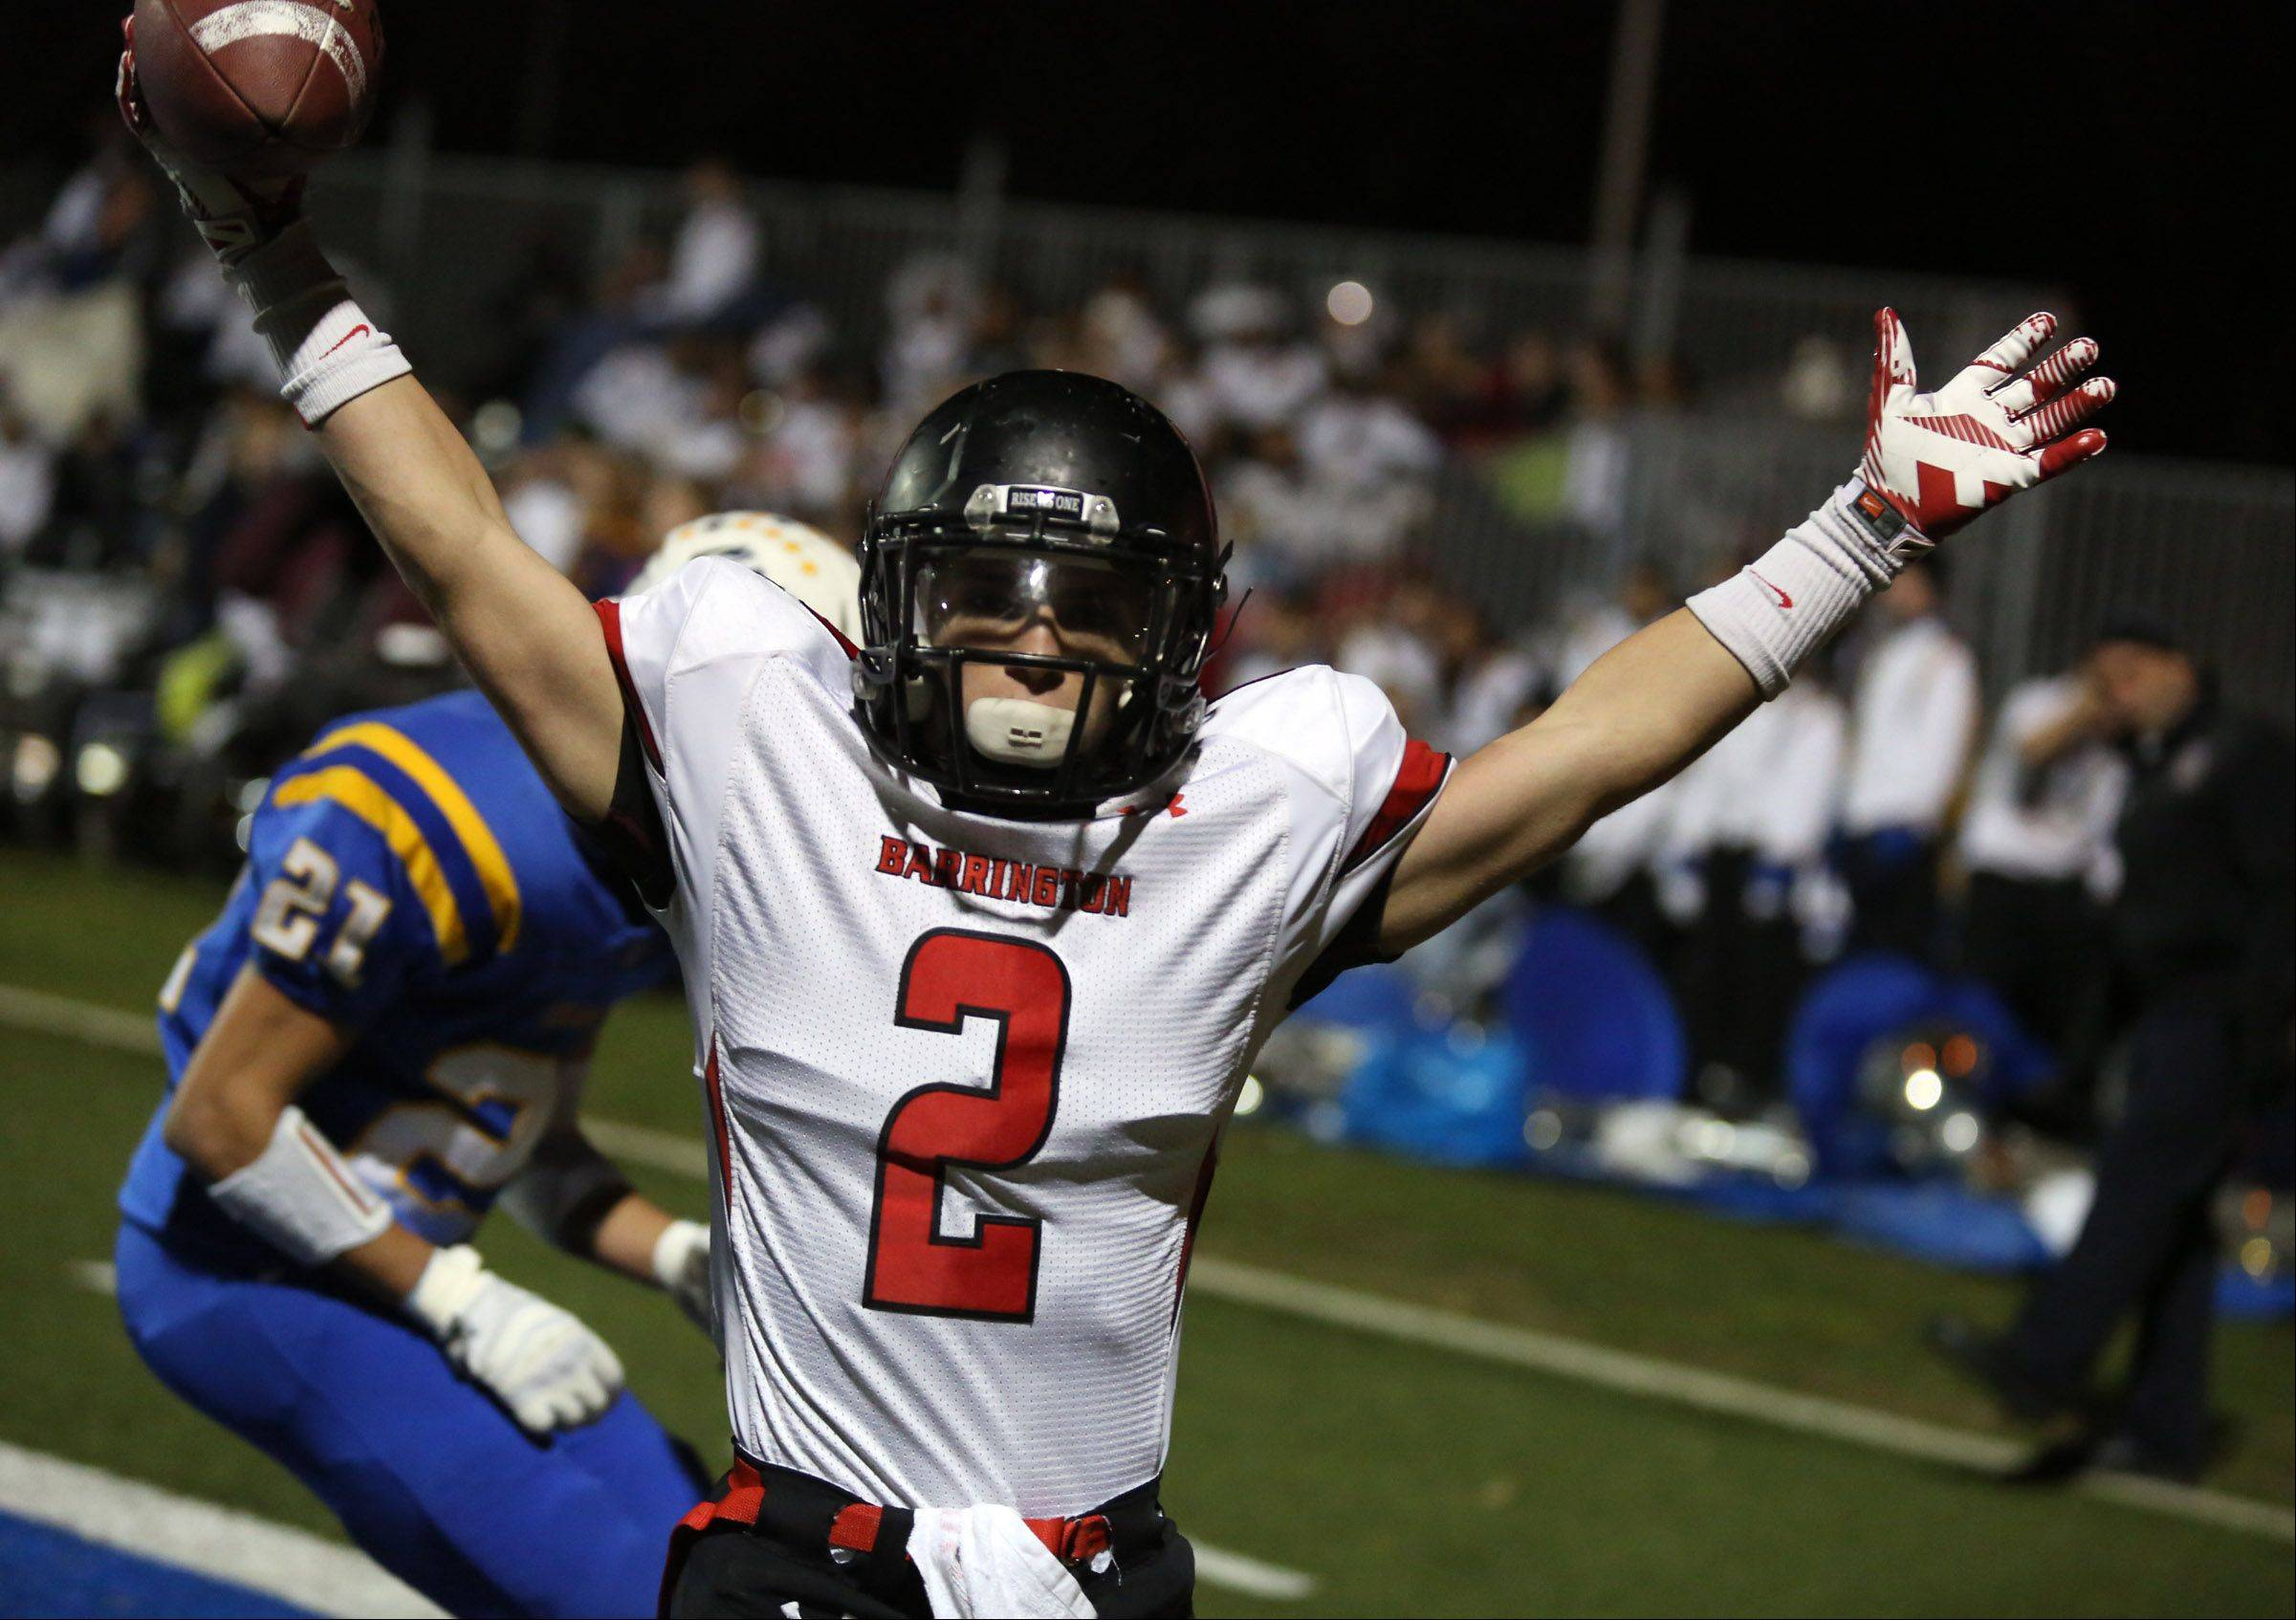 Barrington's Matt Moran celebrates a game-winning touchdown against Warren Saturday in Gurnee.